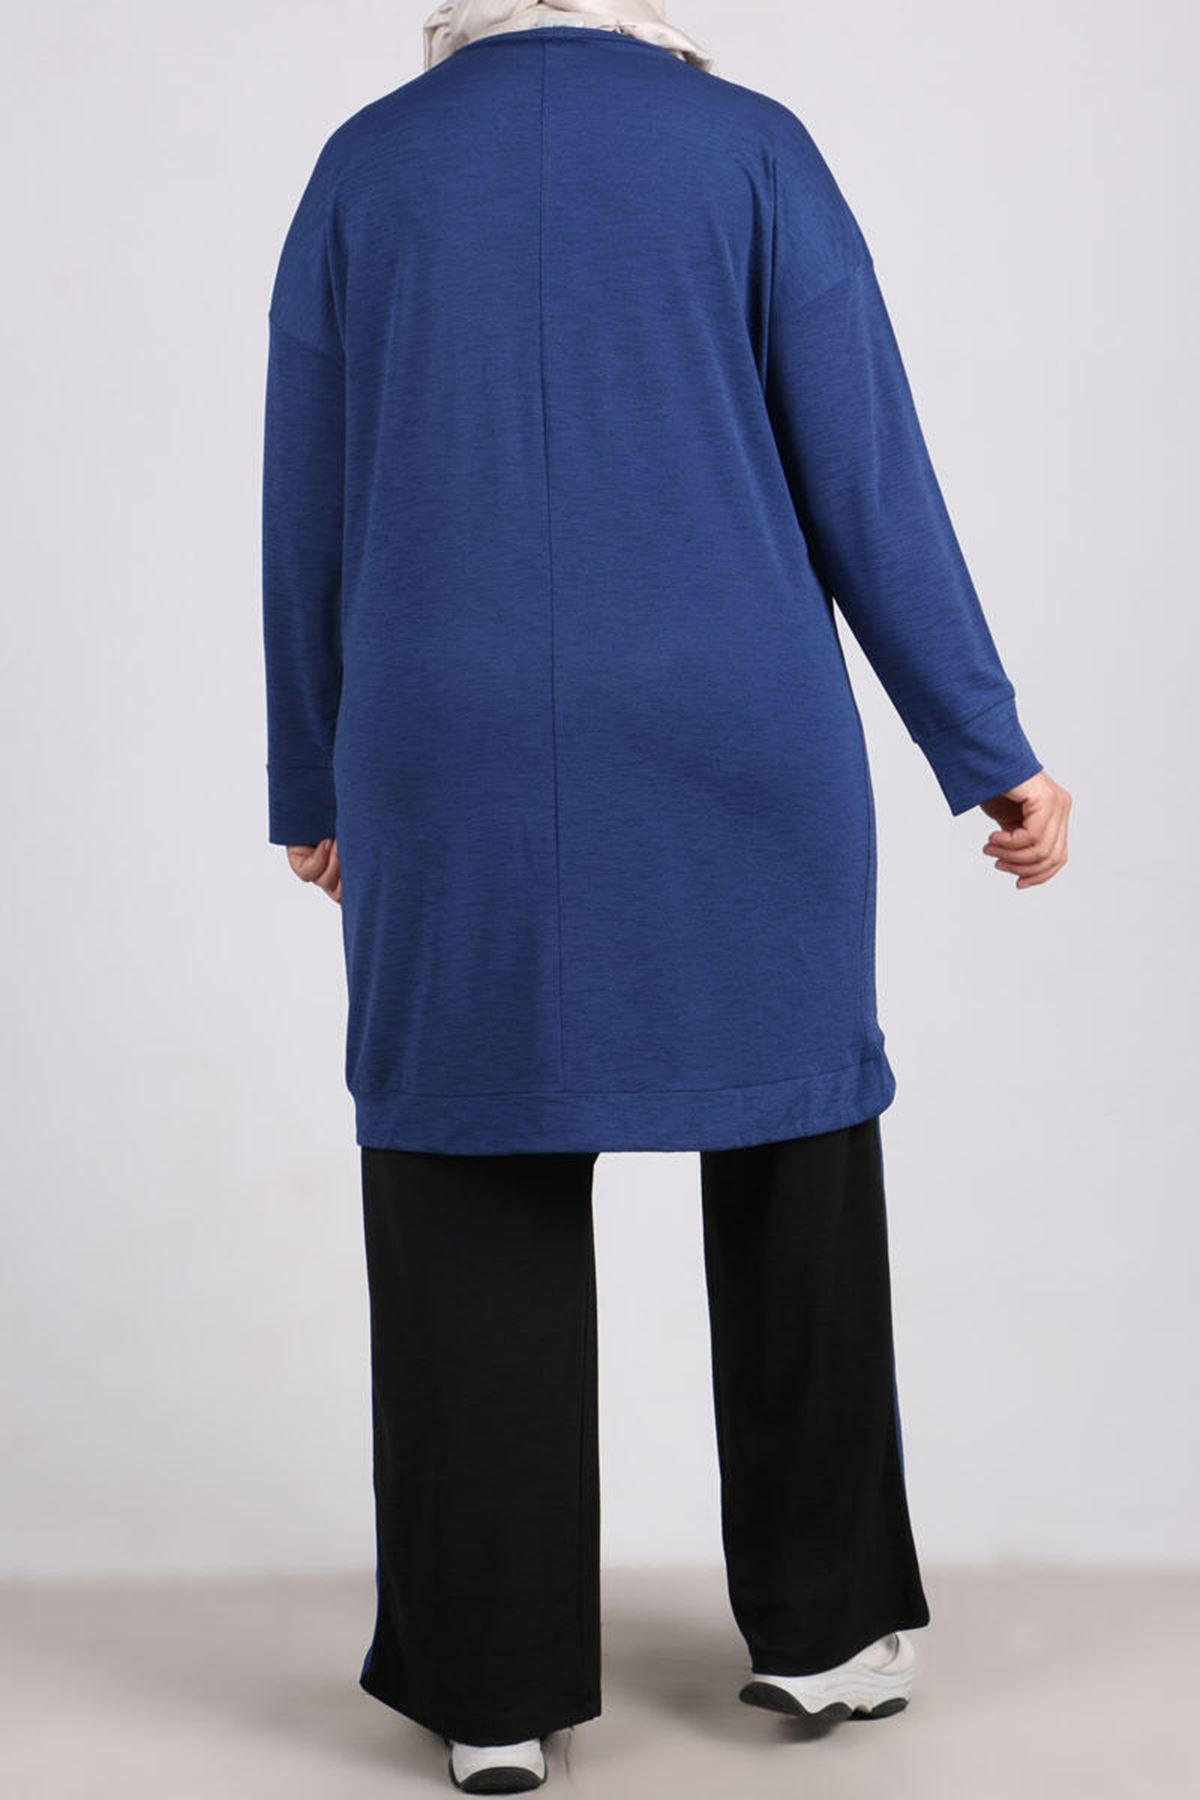 7678 Plus Size Two Piece Set with Tunic and Pants- Indigo